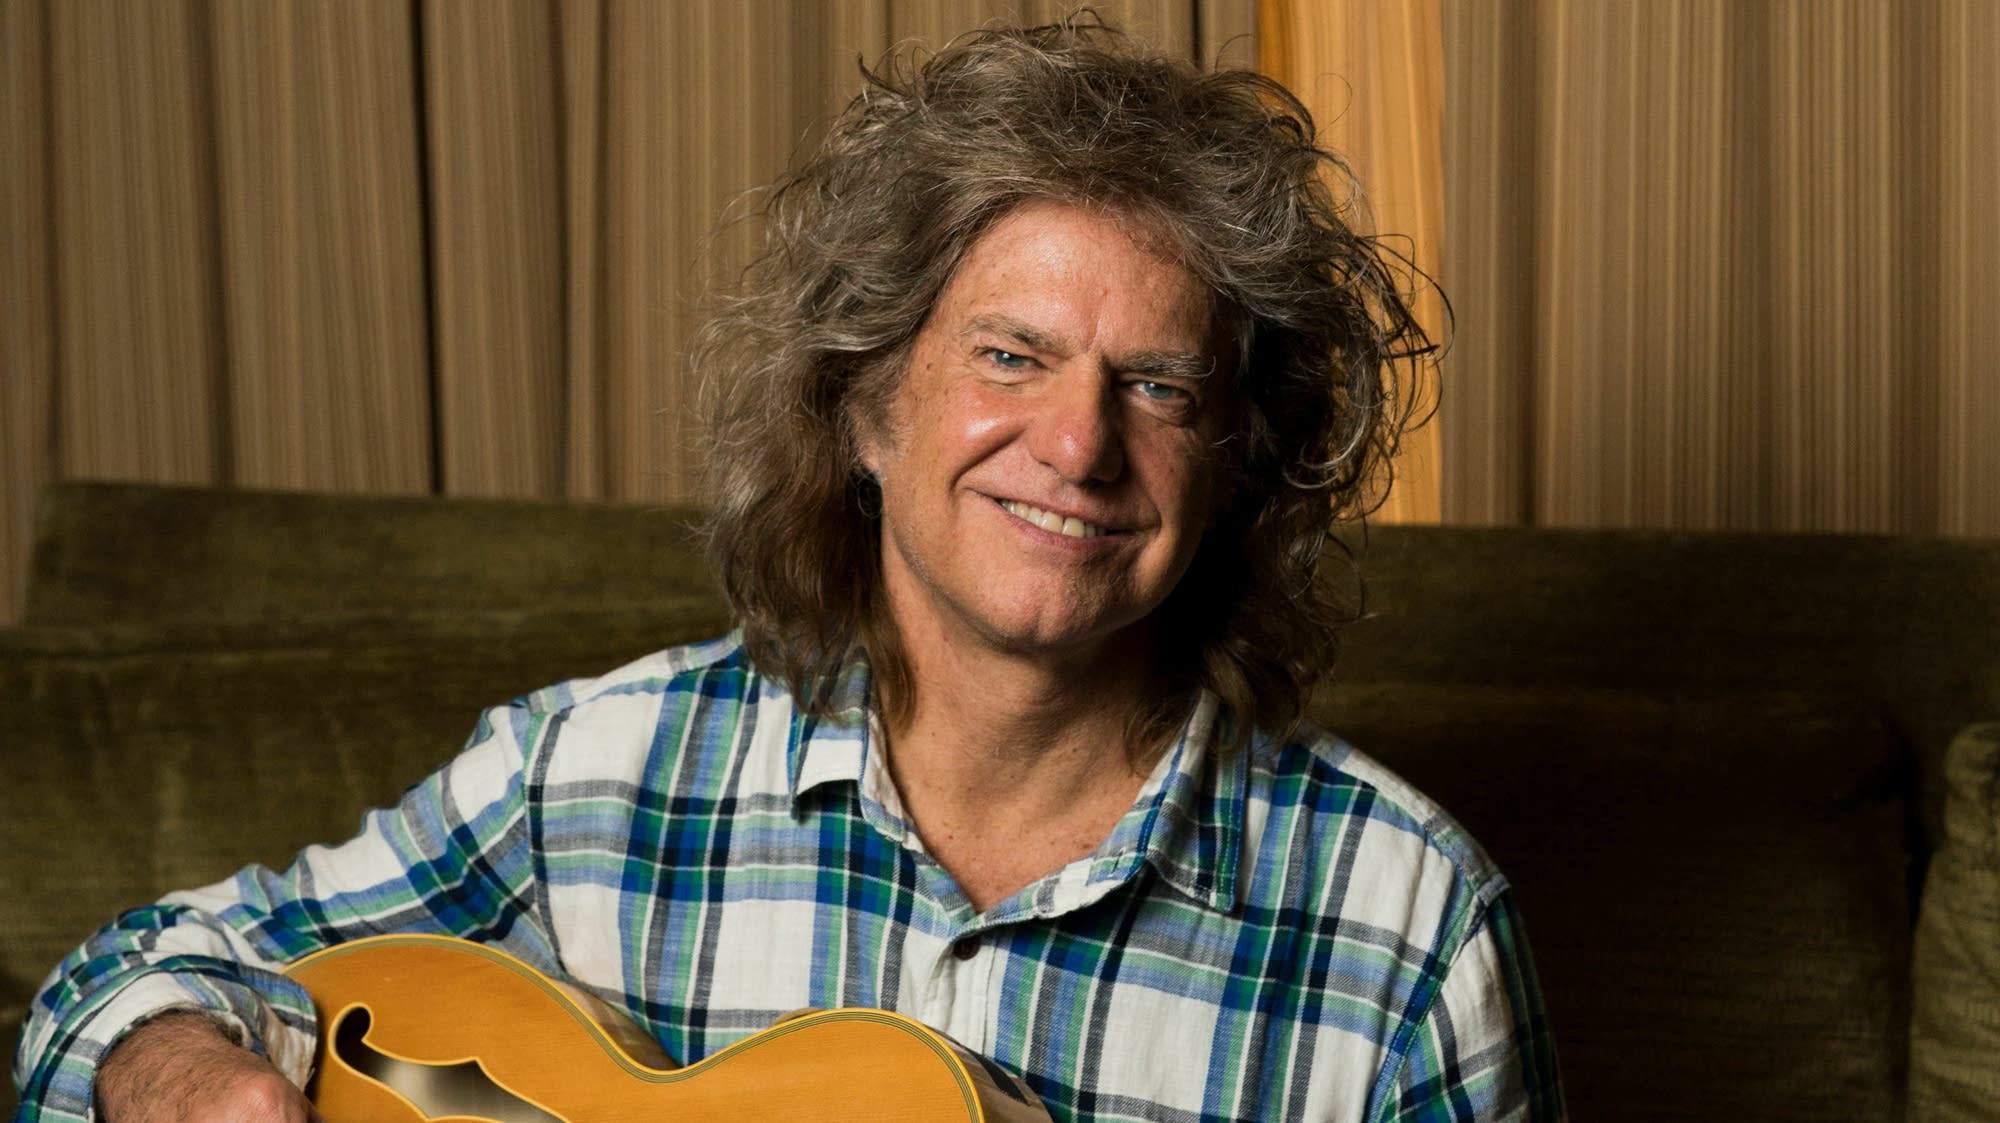 New Classical Tracks: Pat Metheny enters the world of classical guitar